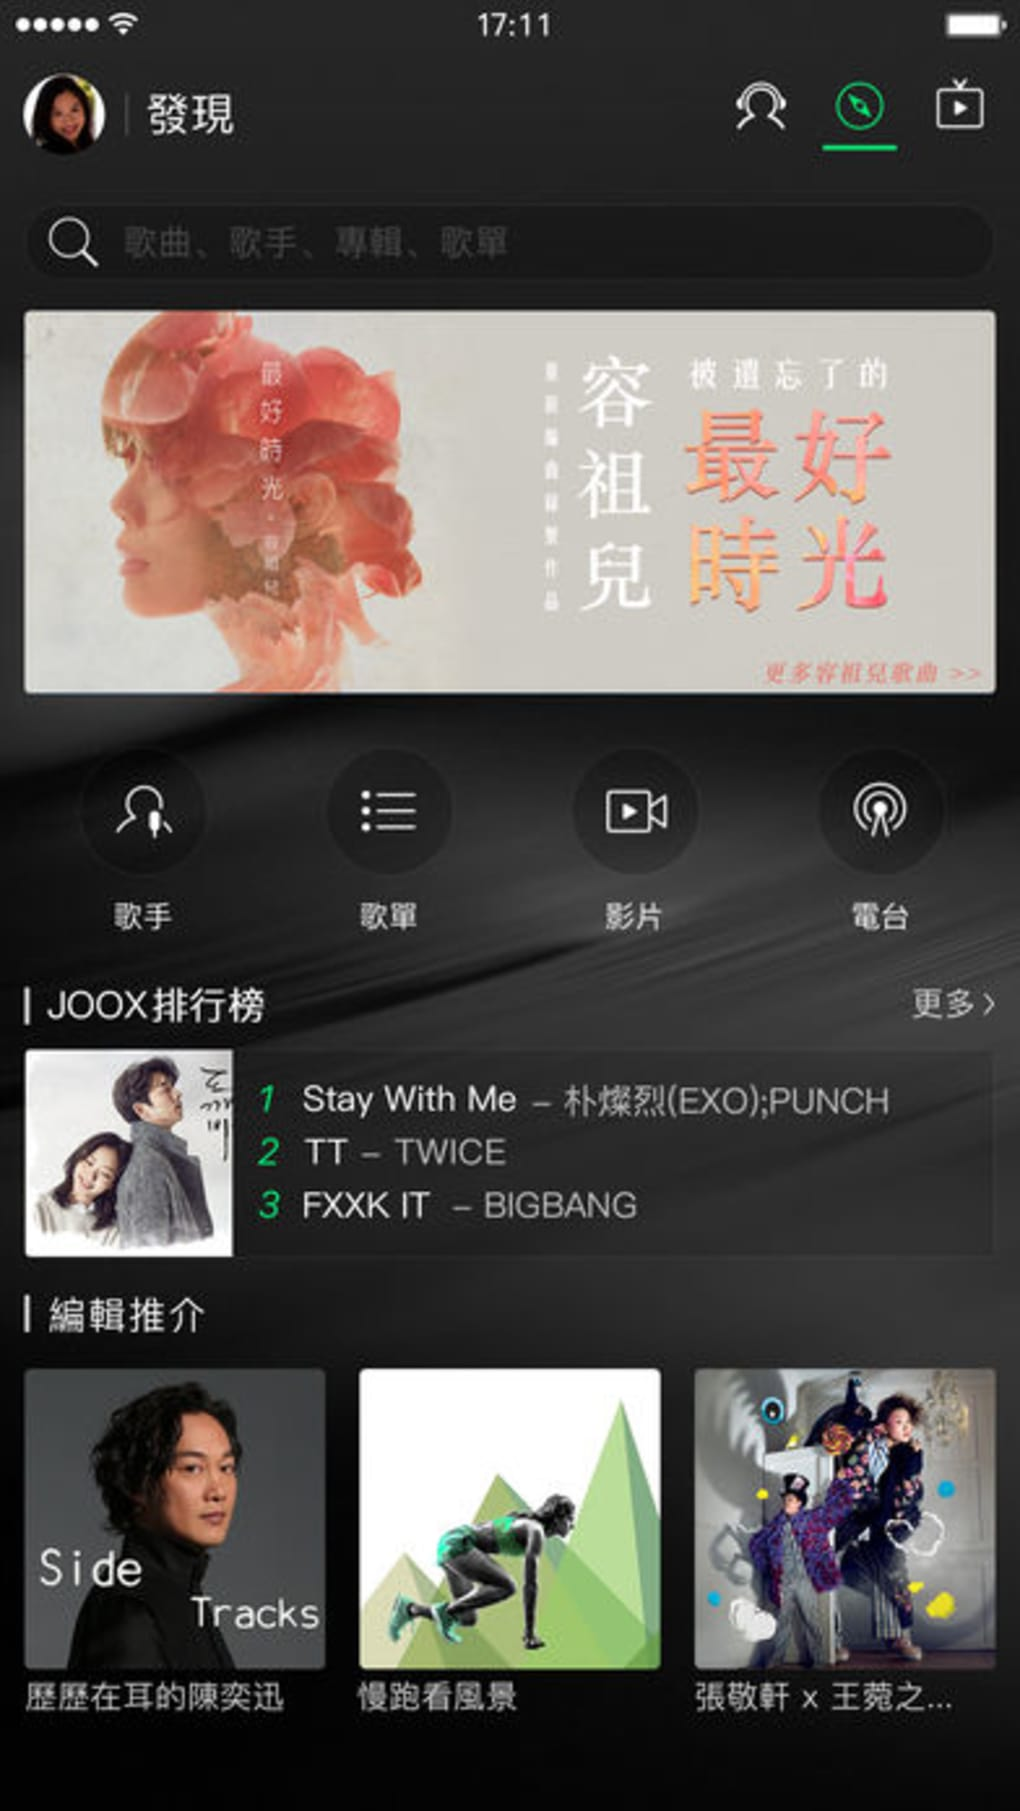 JOOX Music - Live and Karaoke for iPhone - Download